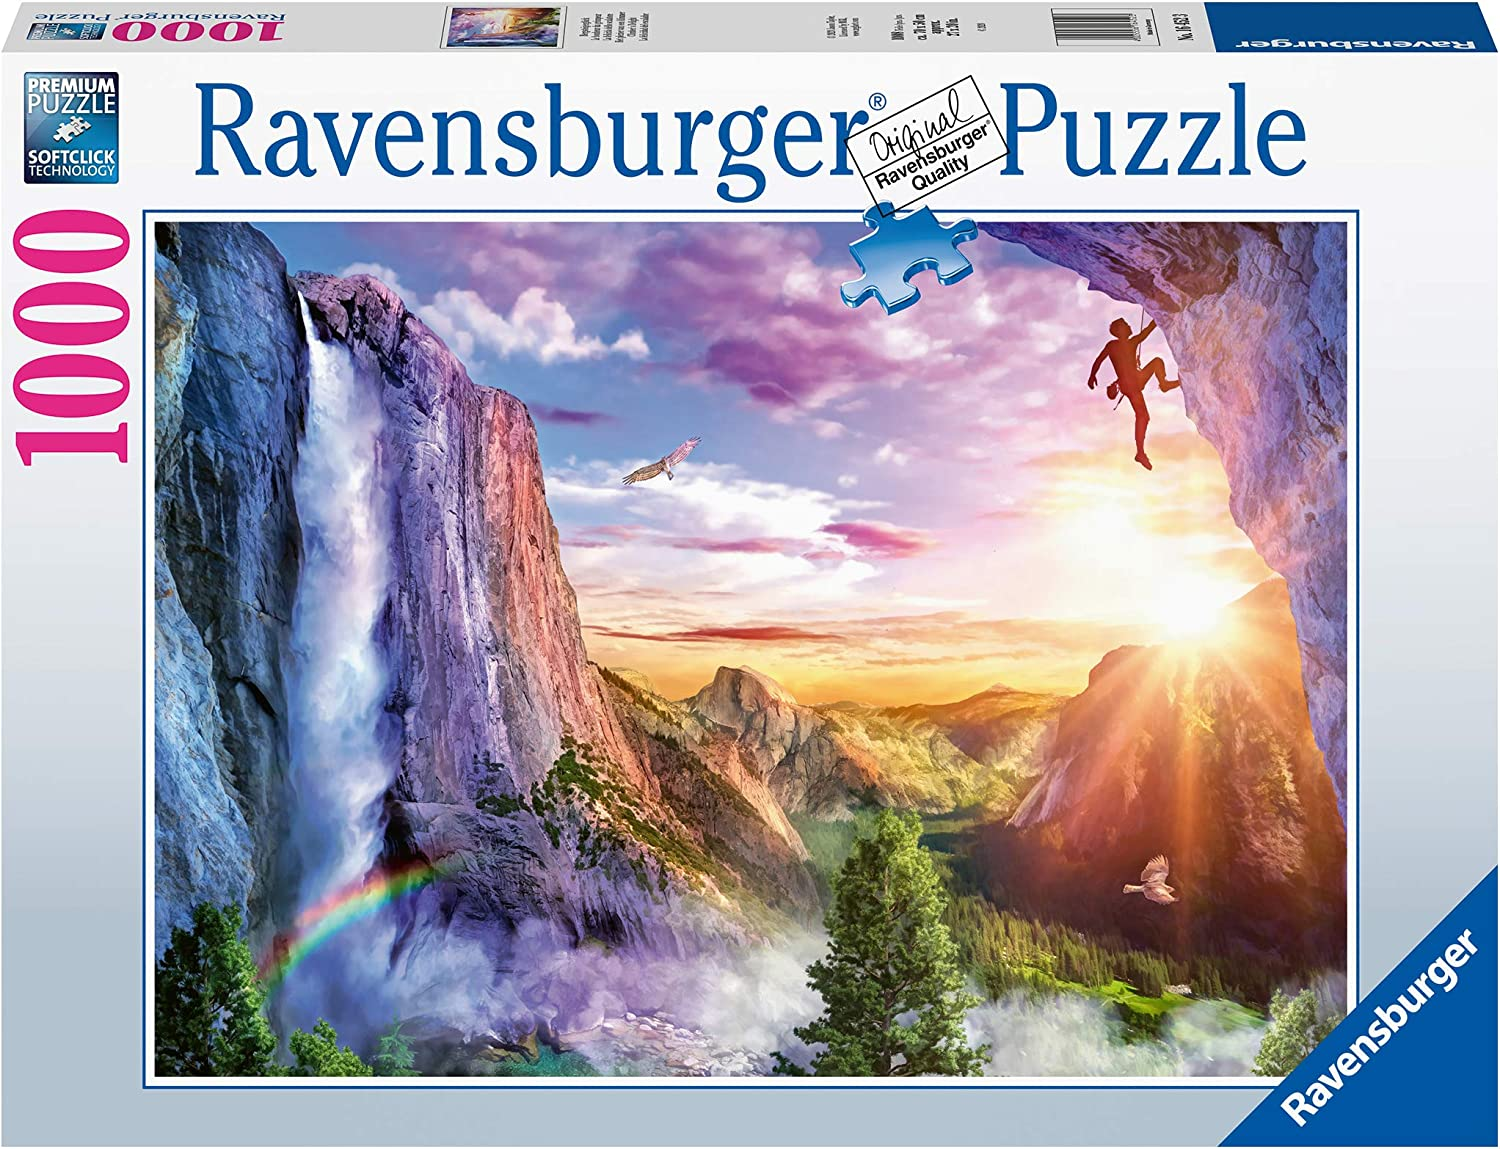 Ravensburger 16452 Climber's Delight 1000 Piece Puzzle for Adults - Every Piece is Unique, Softclick Technology Means Pieces Fit Together Perfectly